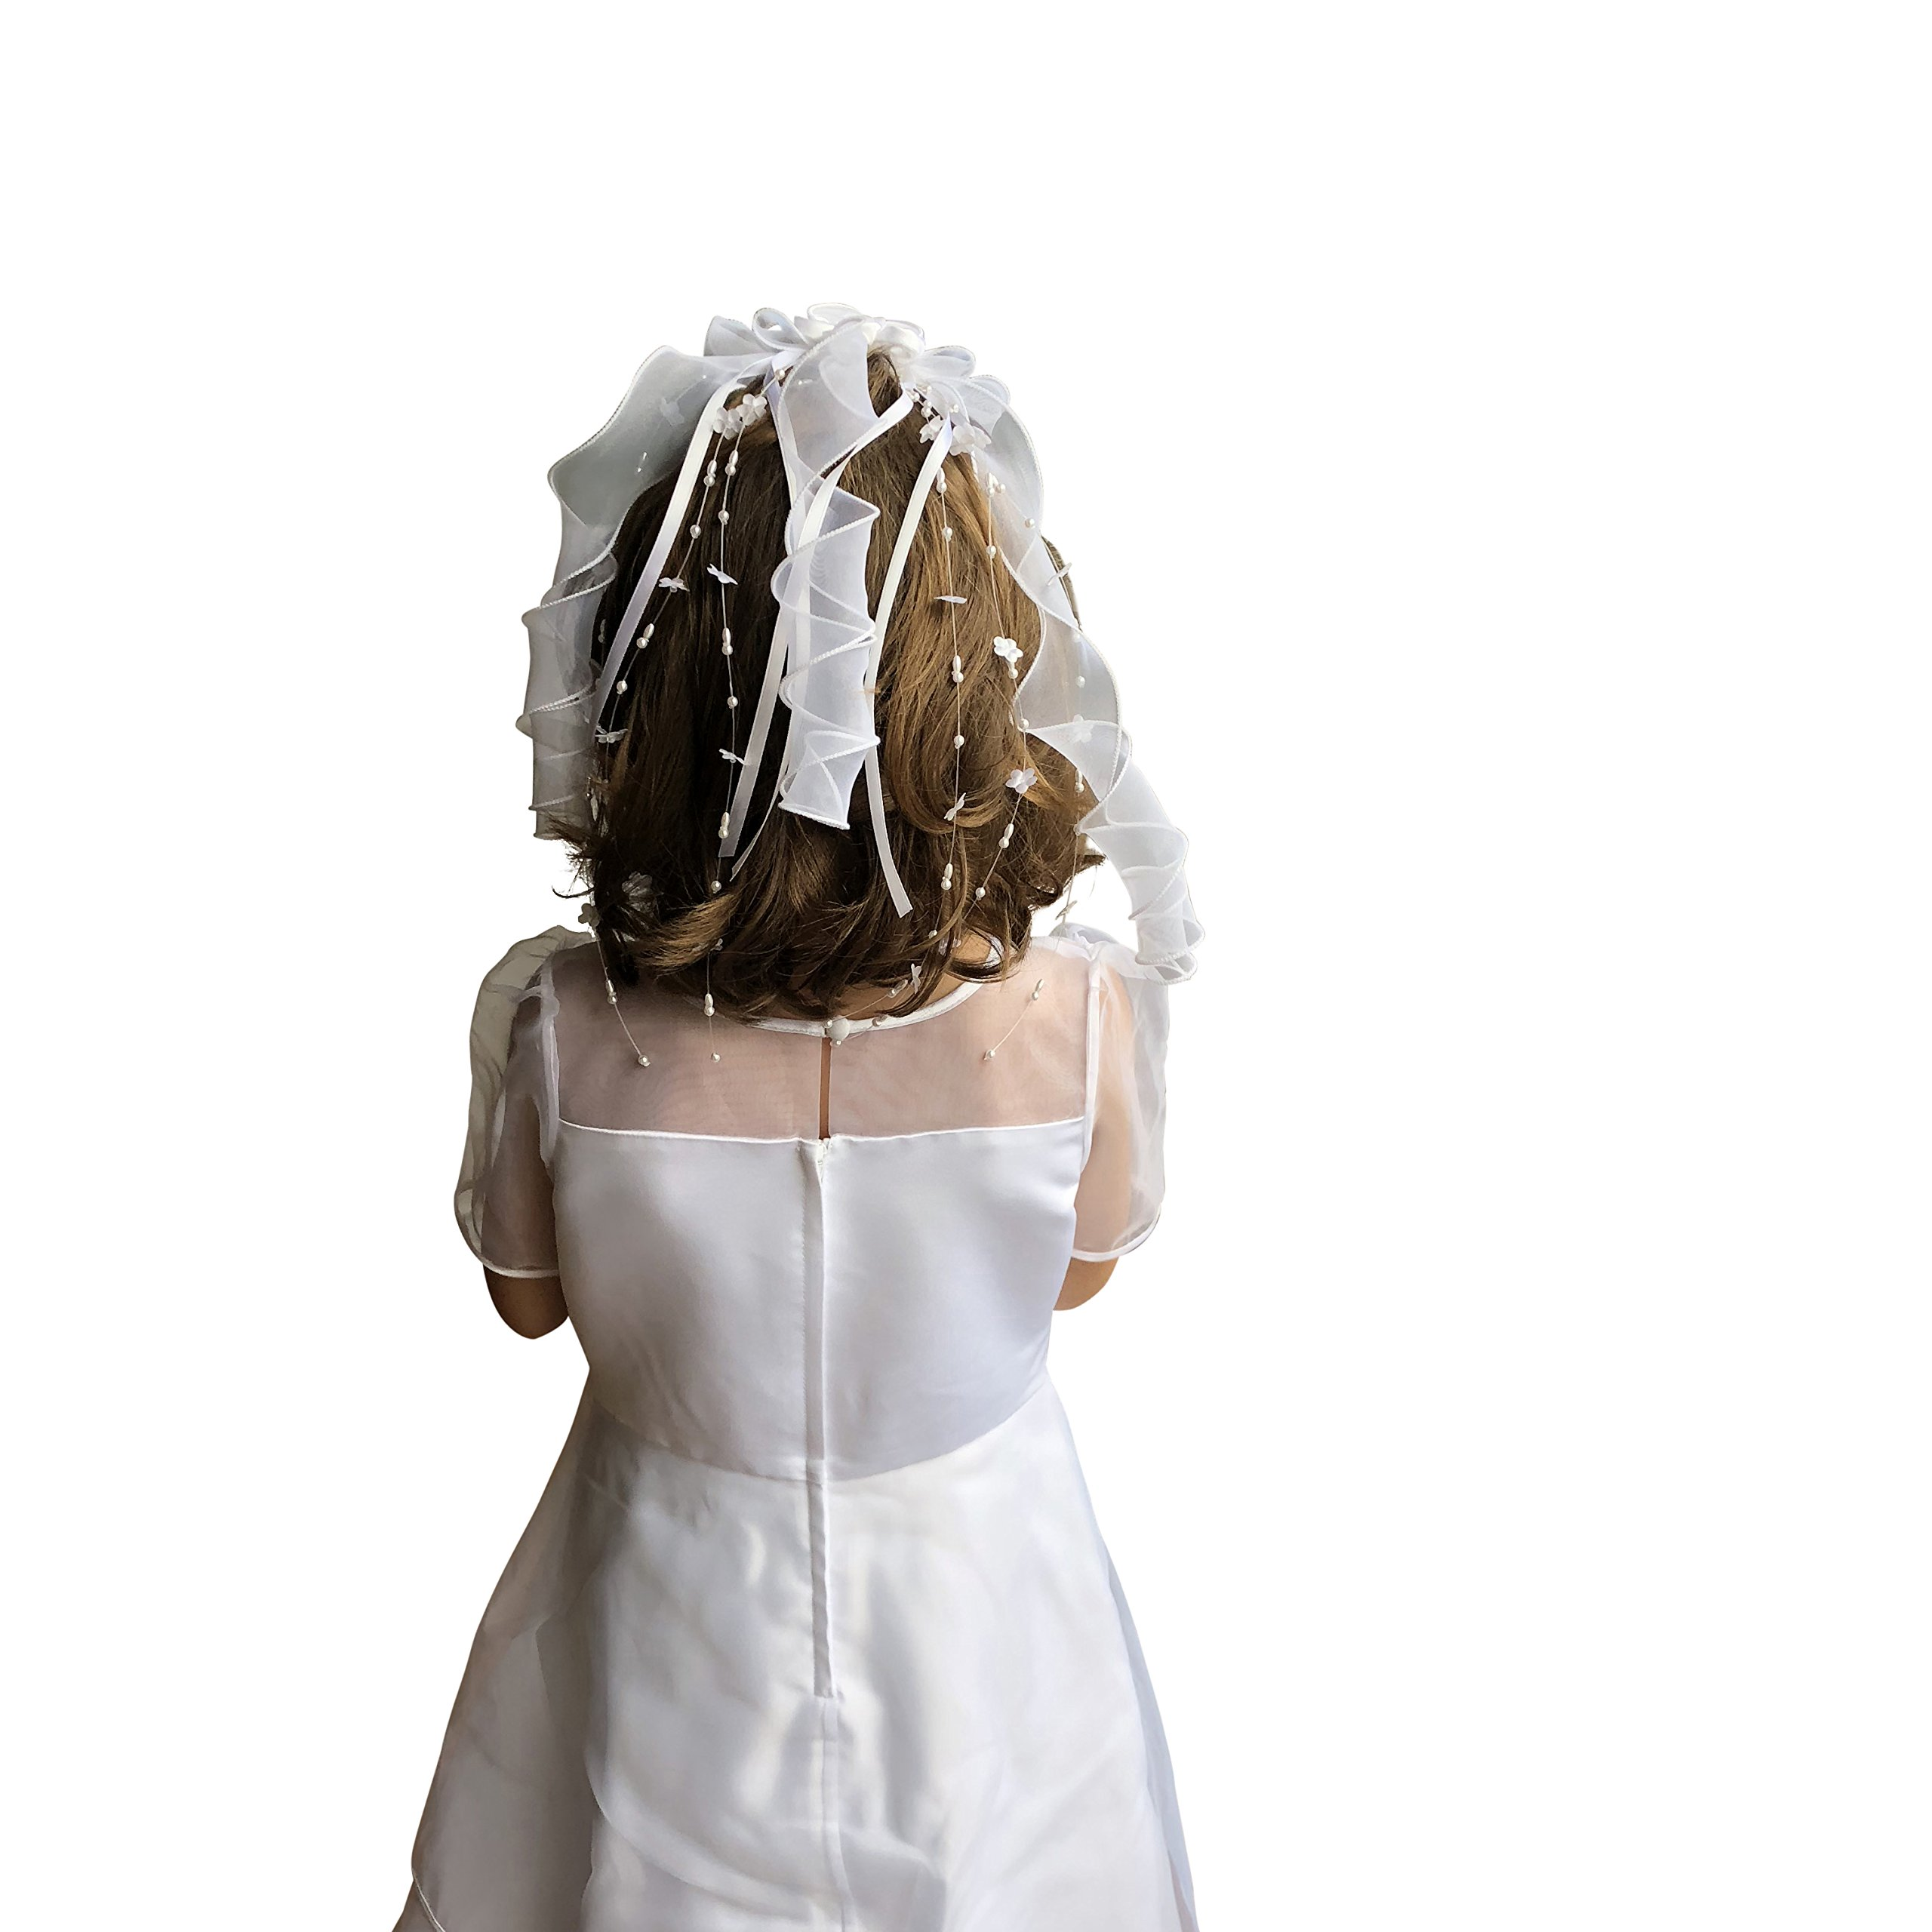 First Communion Veil White Foral Ribbon with Pearl from VGI by VGI (Image #2)